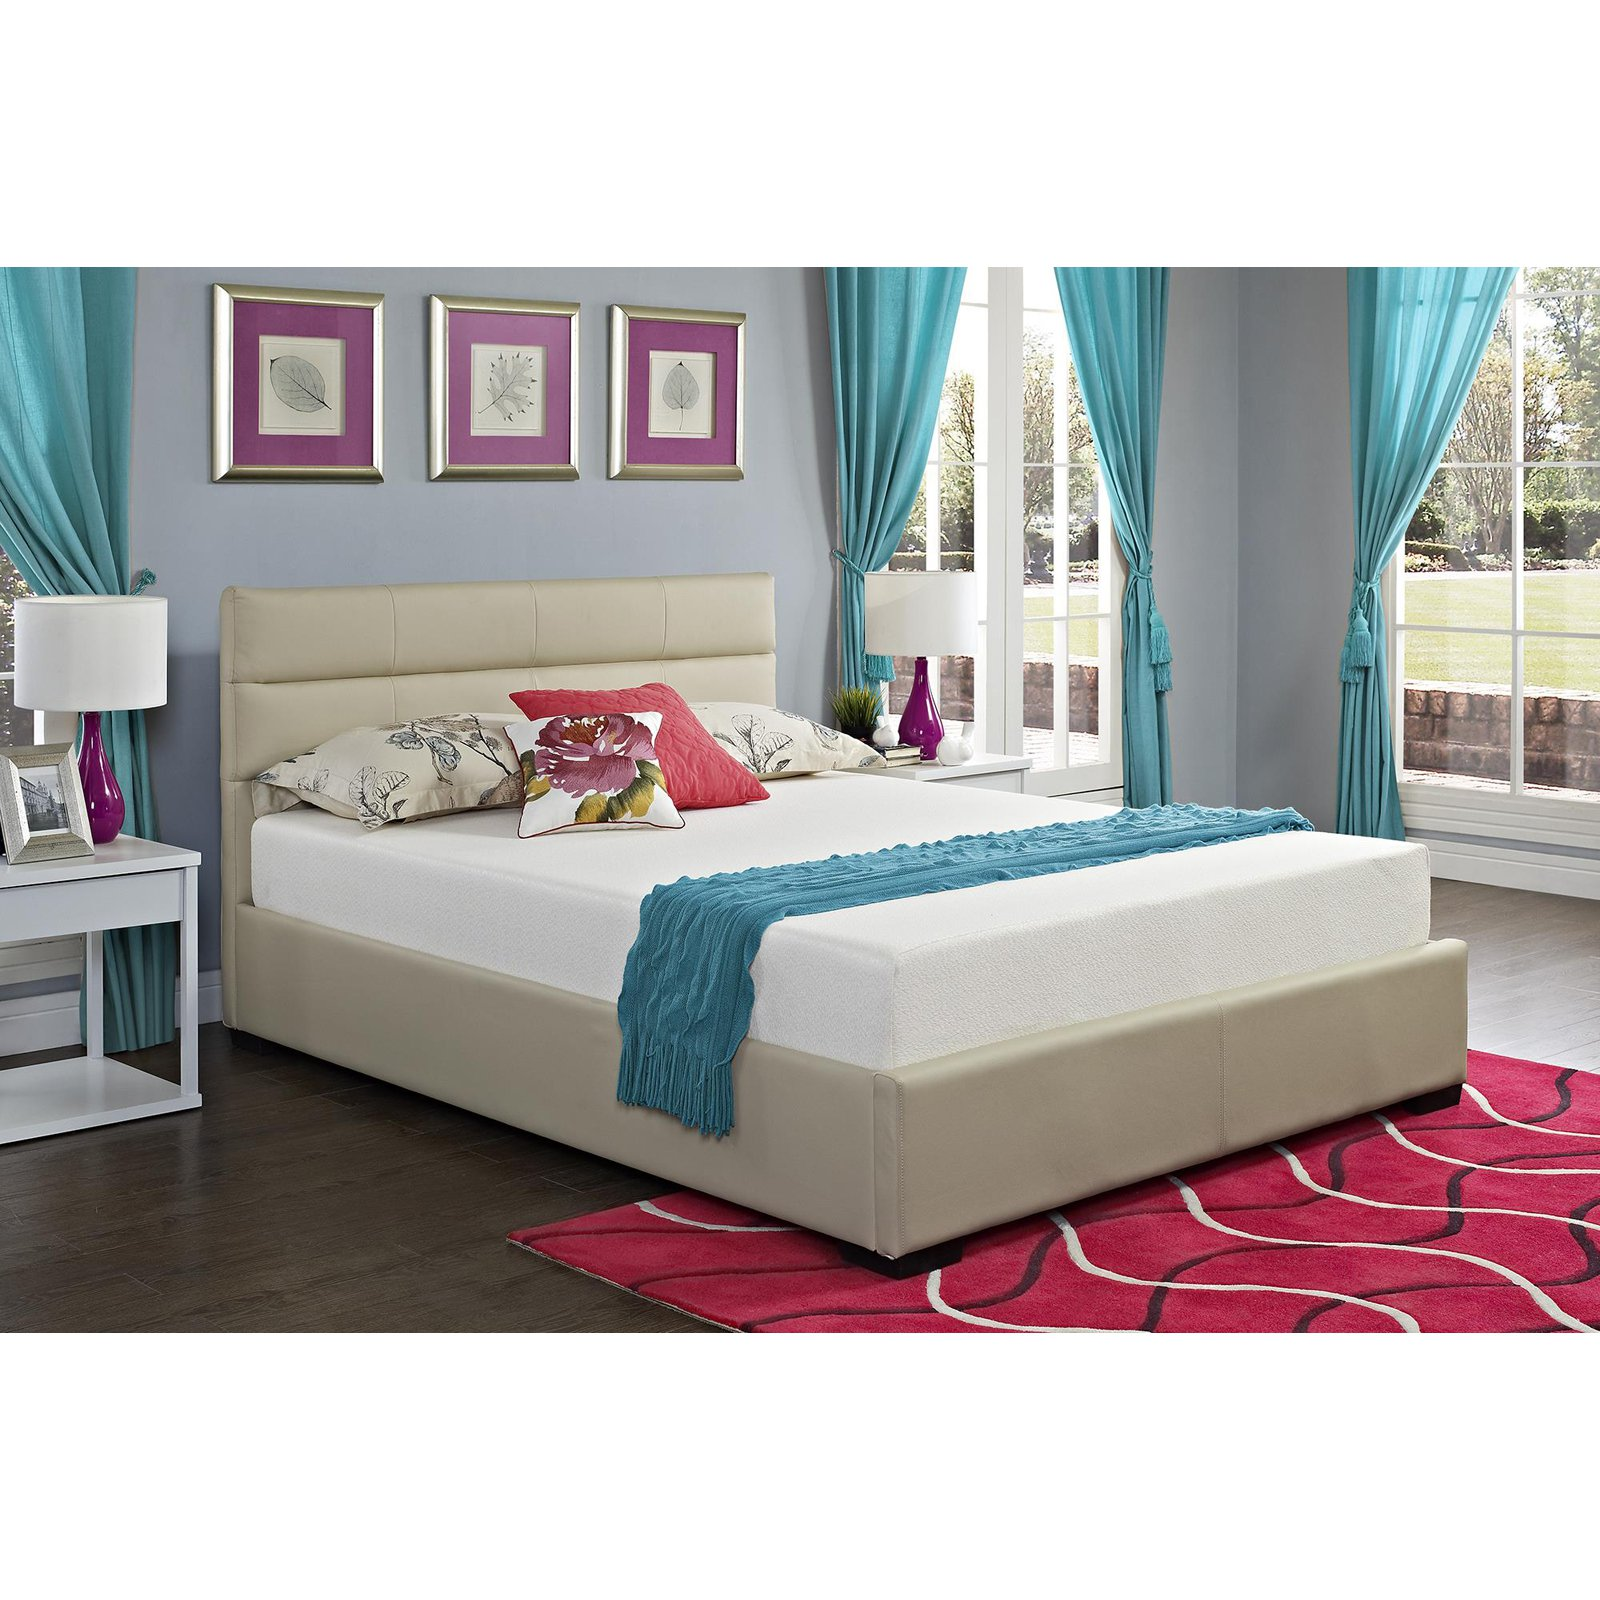 Signature Sleep Silhouette 8 in. Memory Foam Mattress